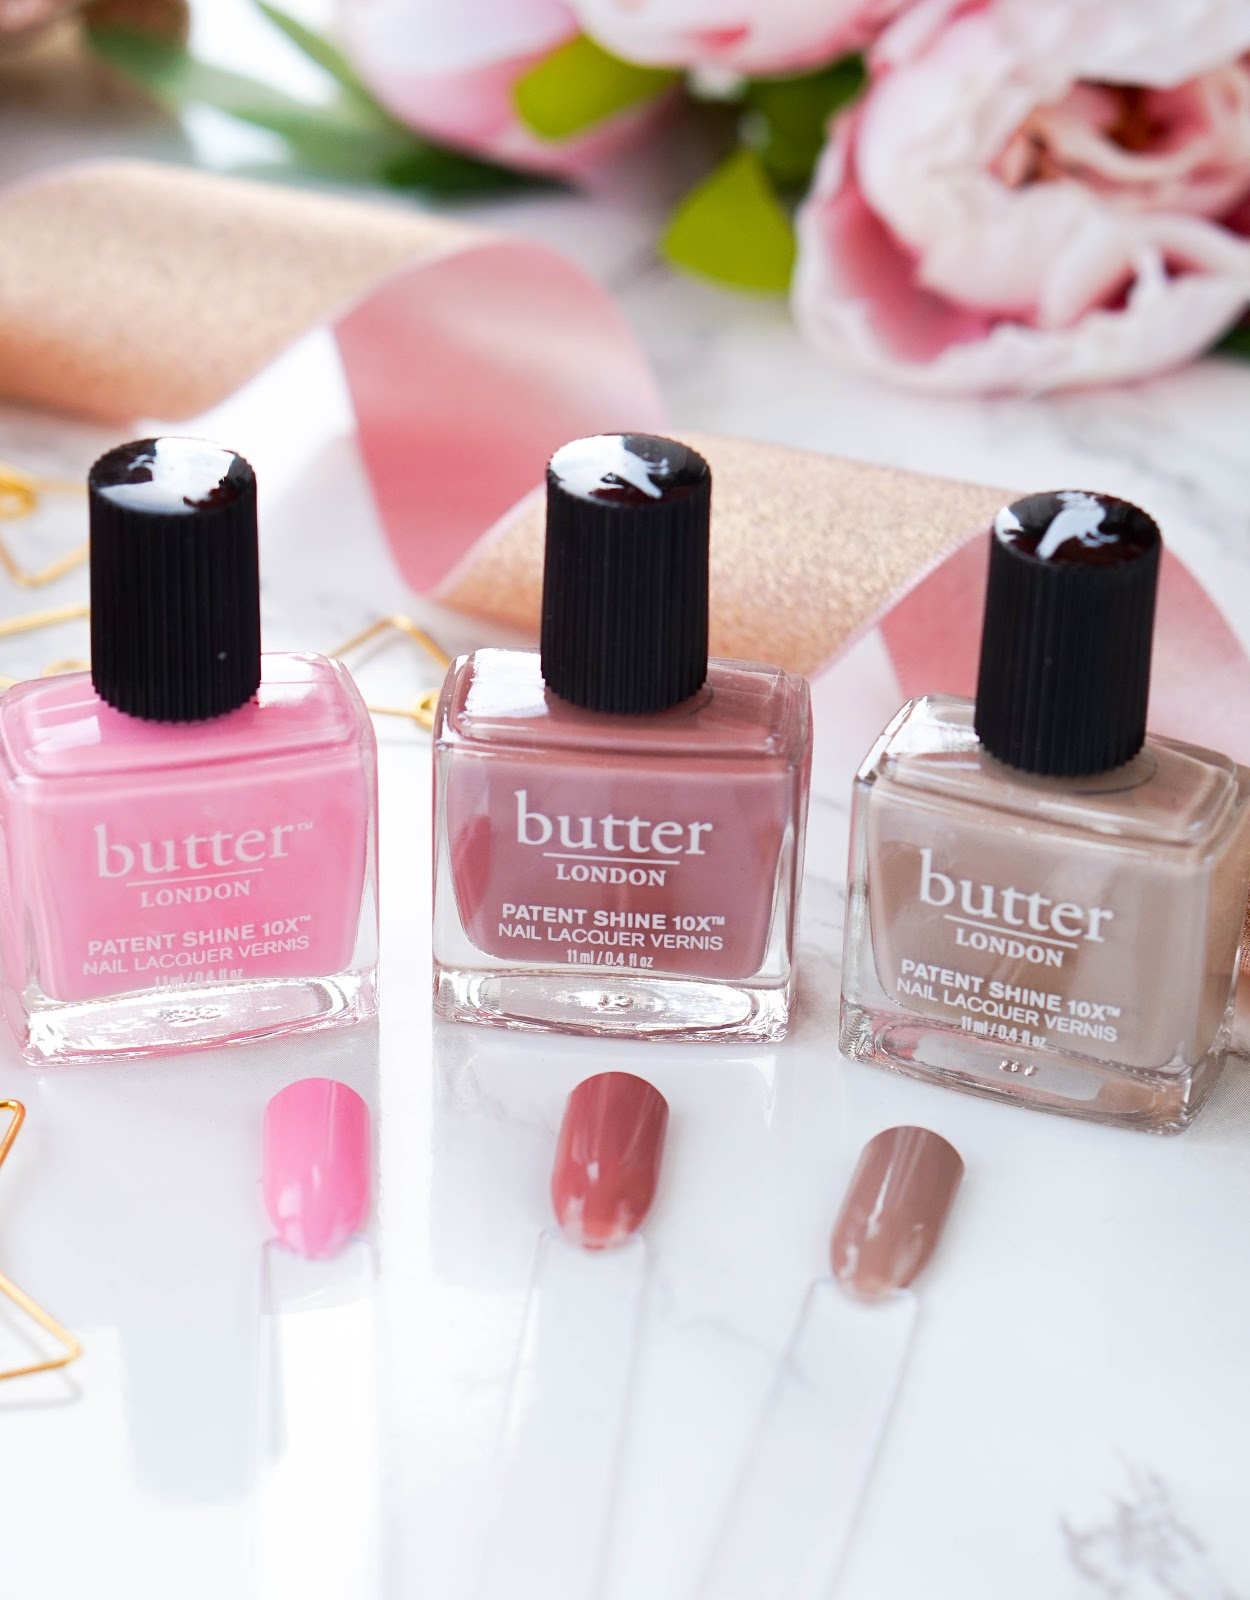 Introducing Butter London